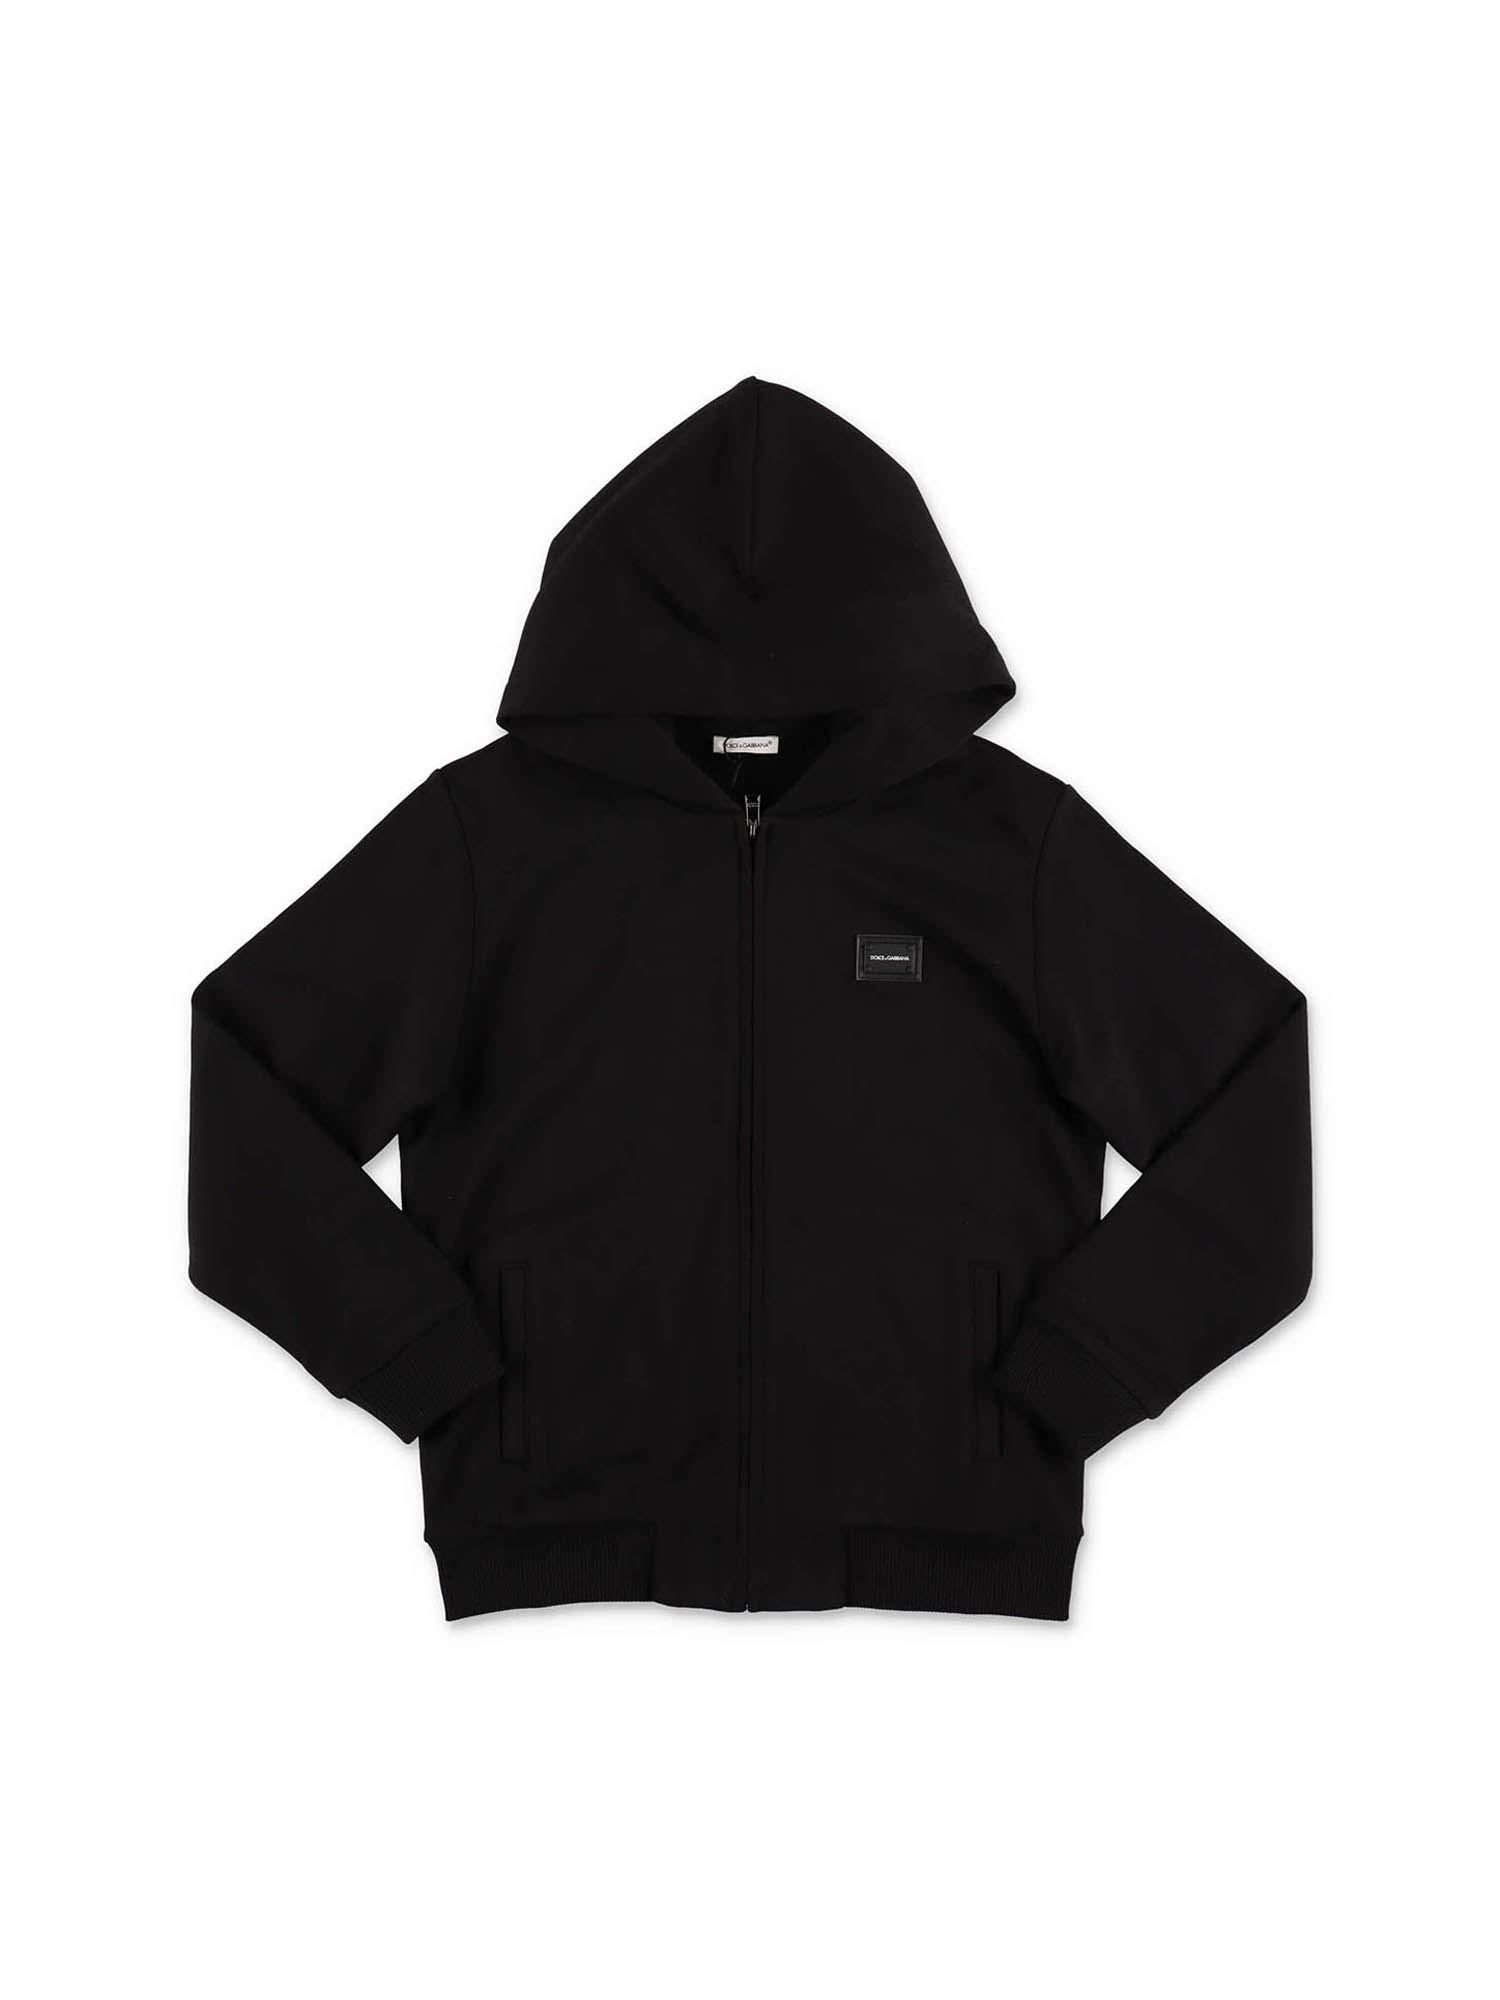 Dolce & Gabbana Jr HOOD AND ZIP SWEATSHIRT IN BLACK